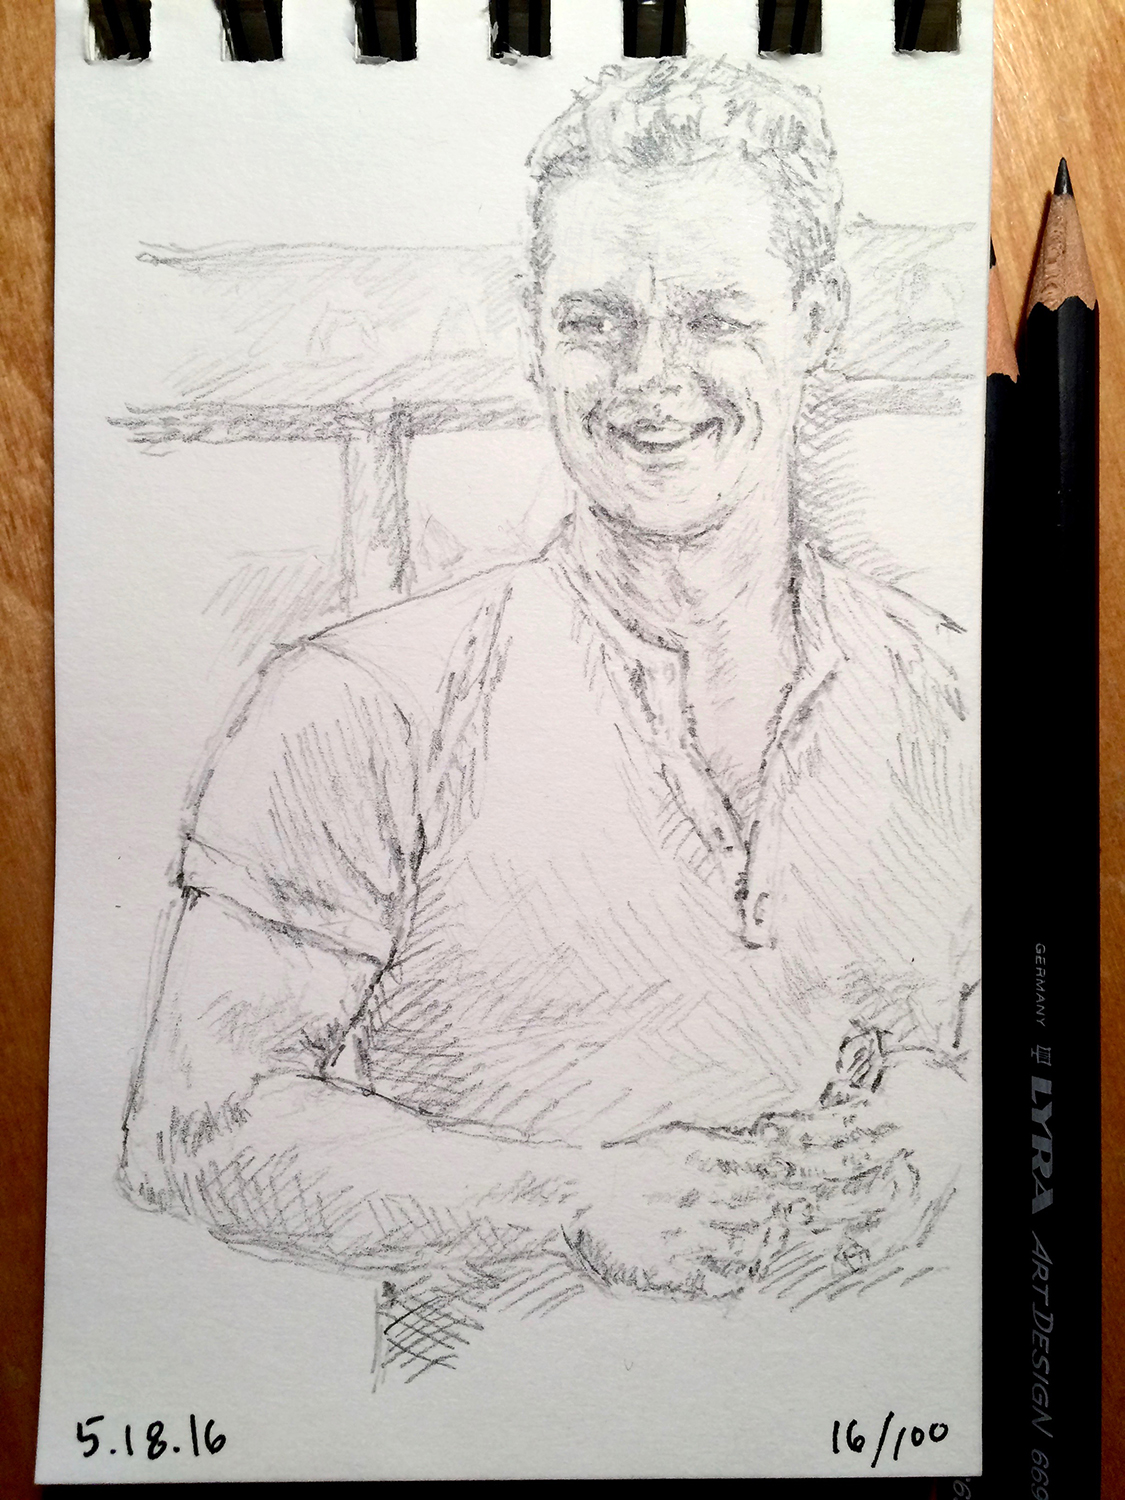 pencil portrait sketch, almost of Matt Damon, by Jennifer Koskinen